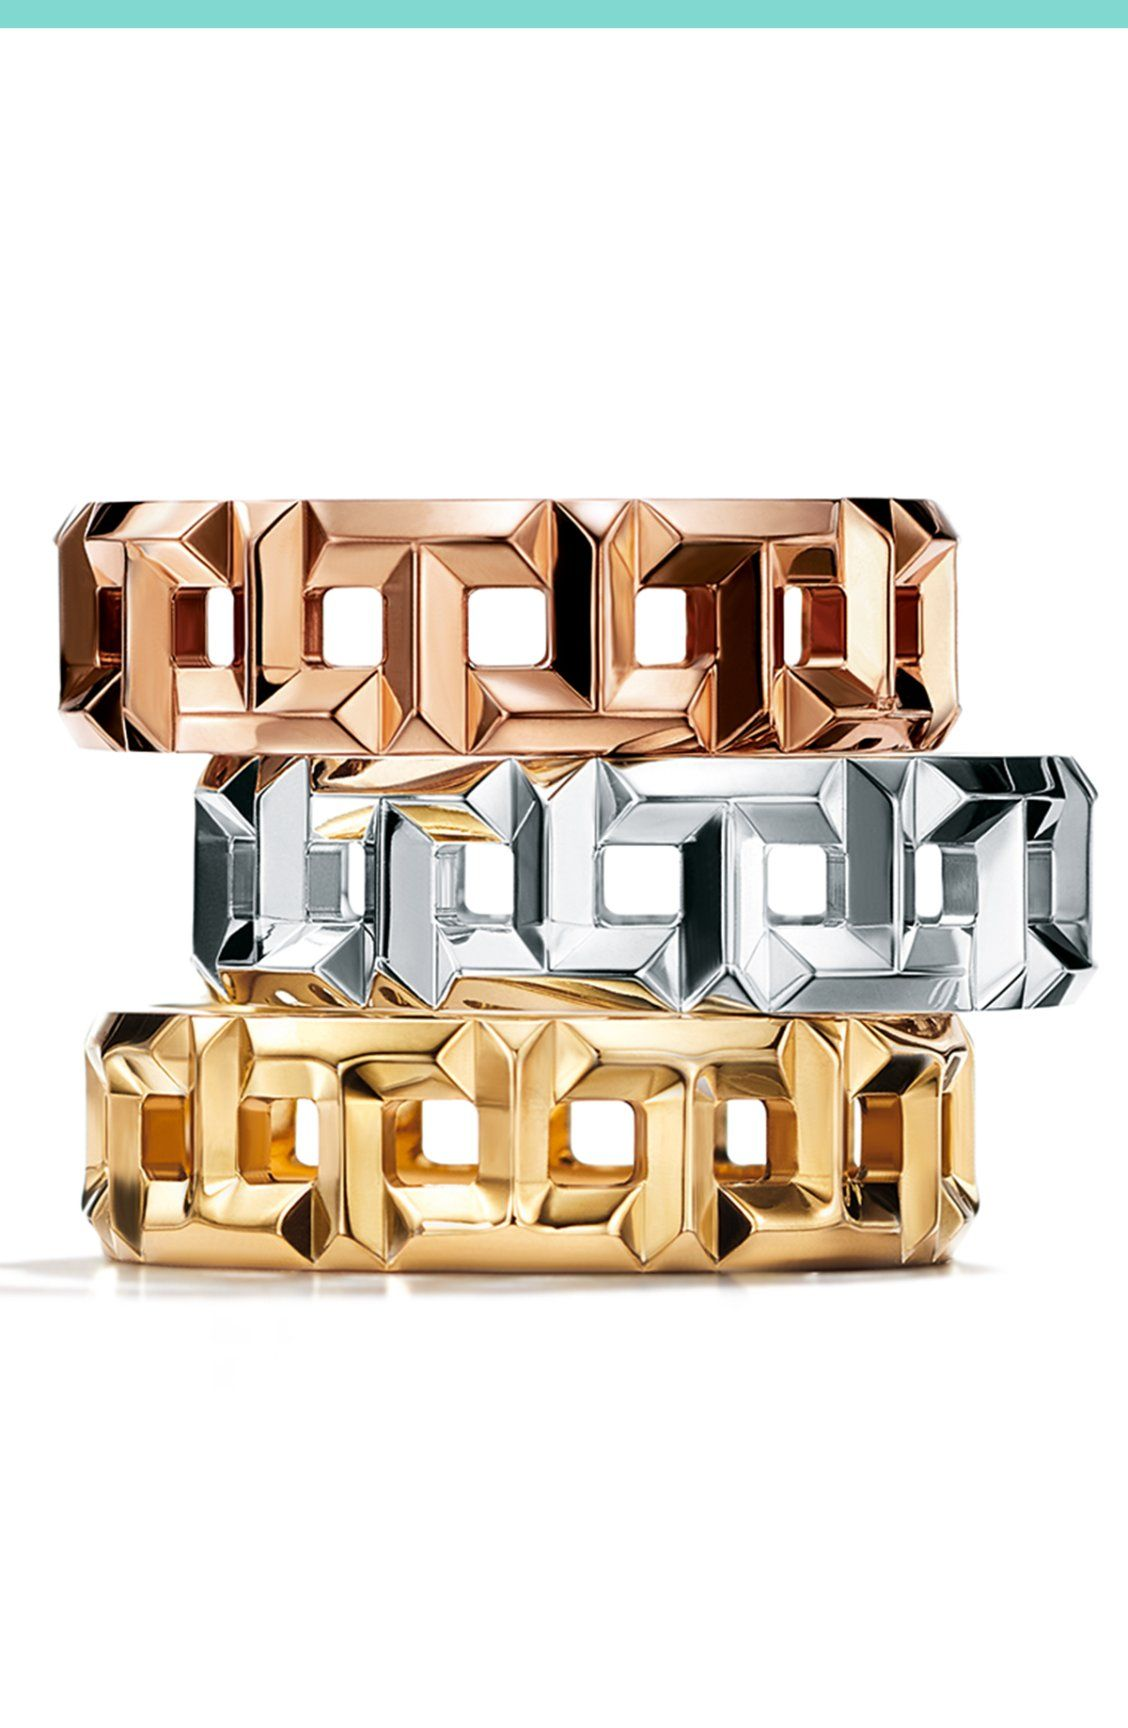 35db0038c Love is love, any way you stack it. Tiffany T True band rings in 18k  yellow, white and rose gold.